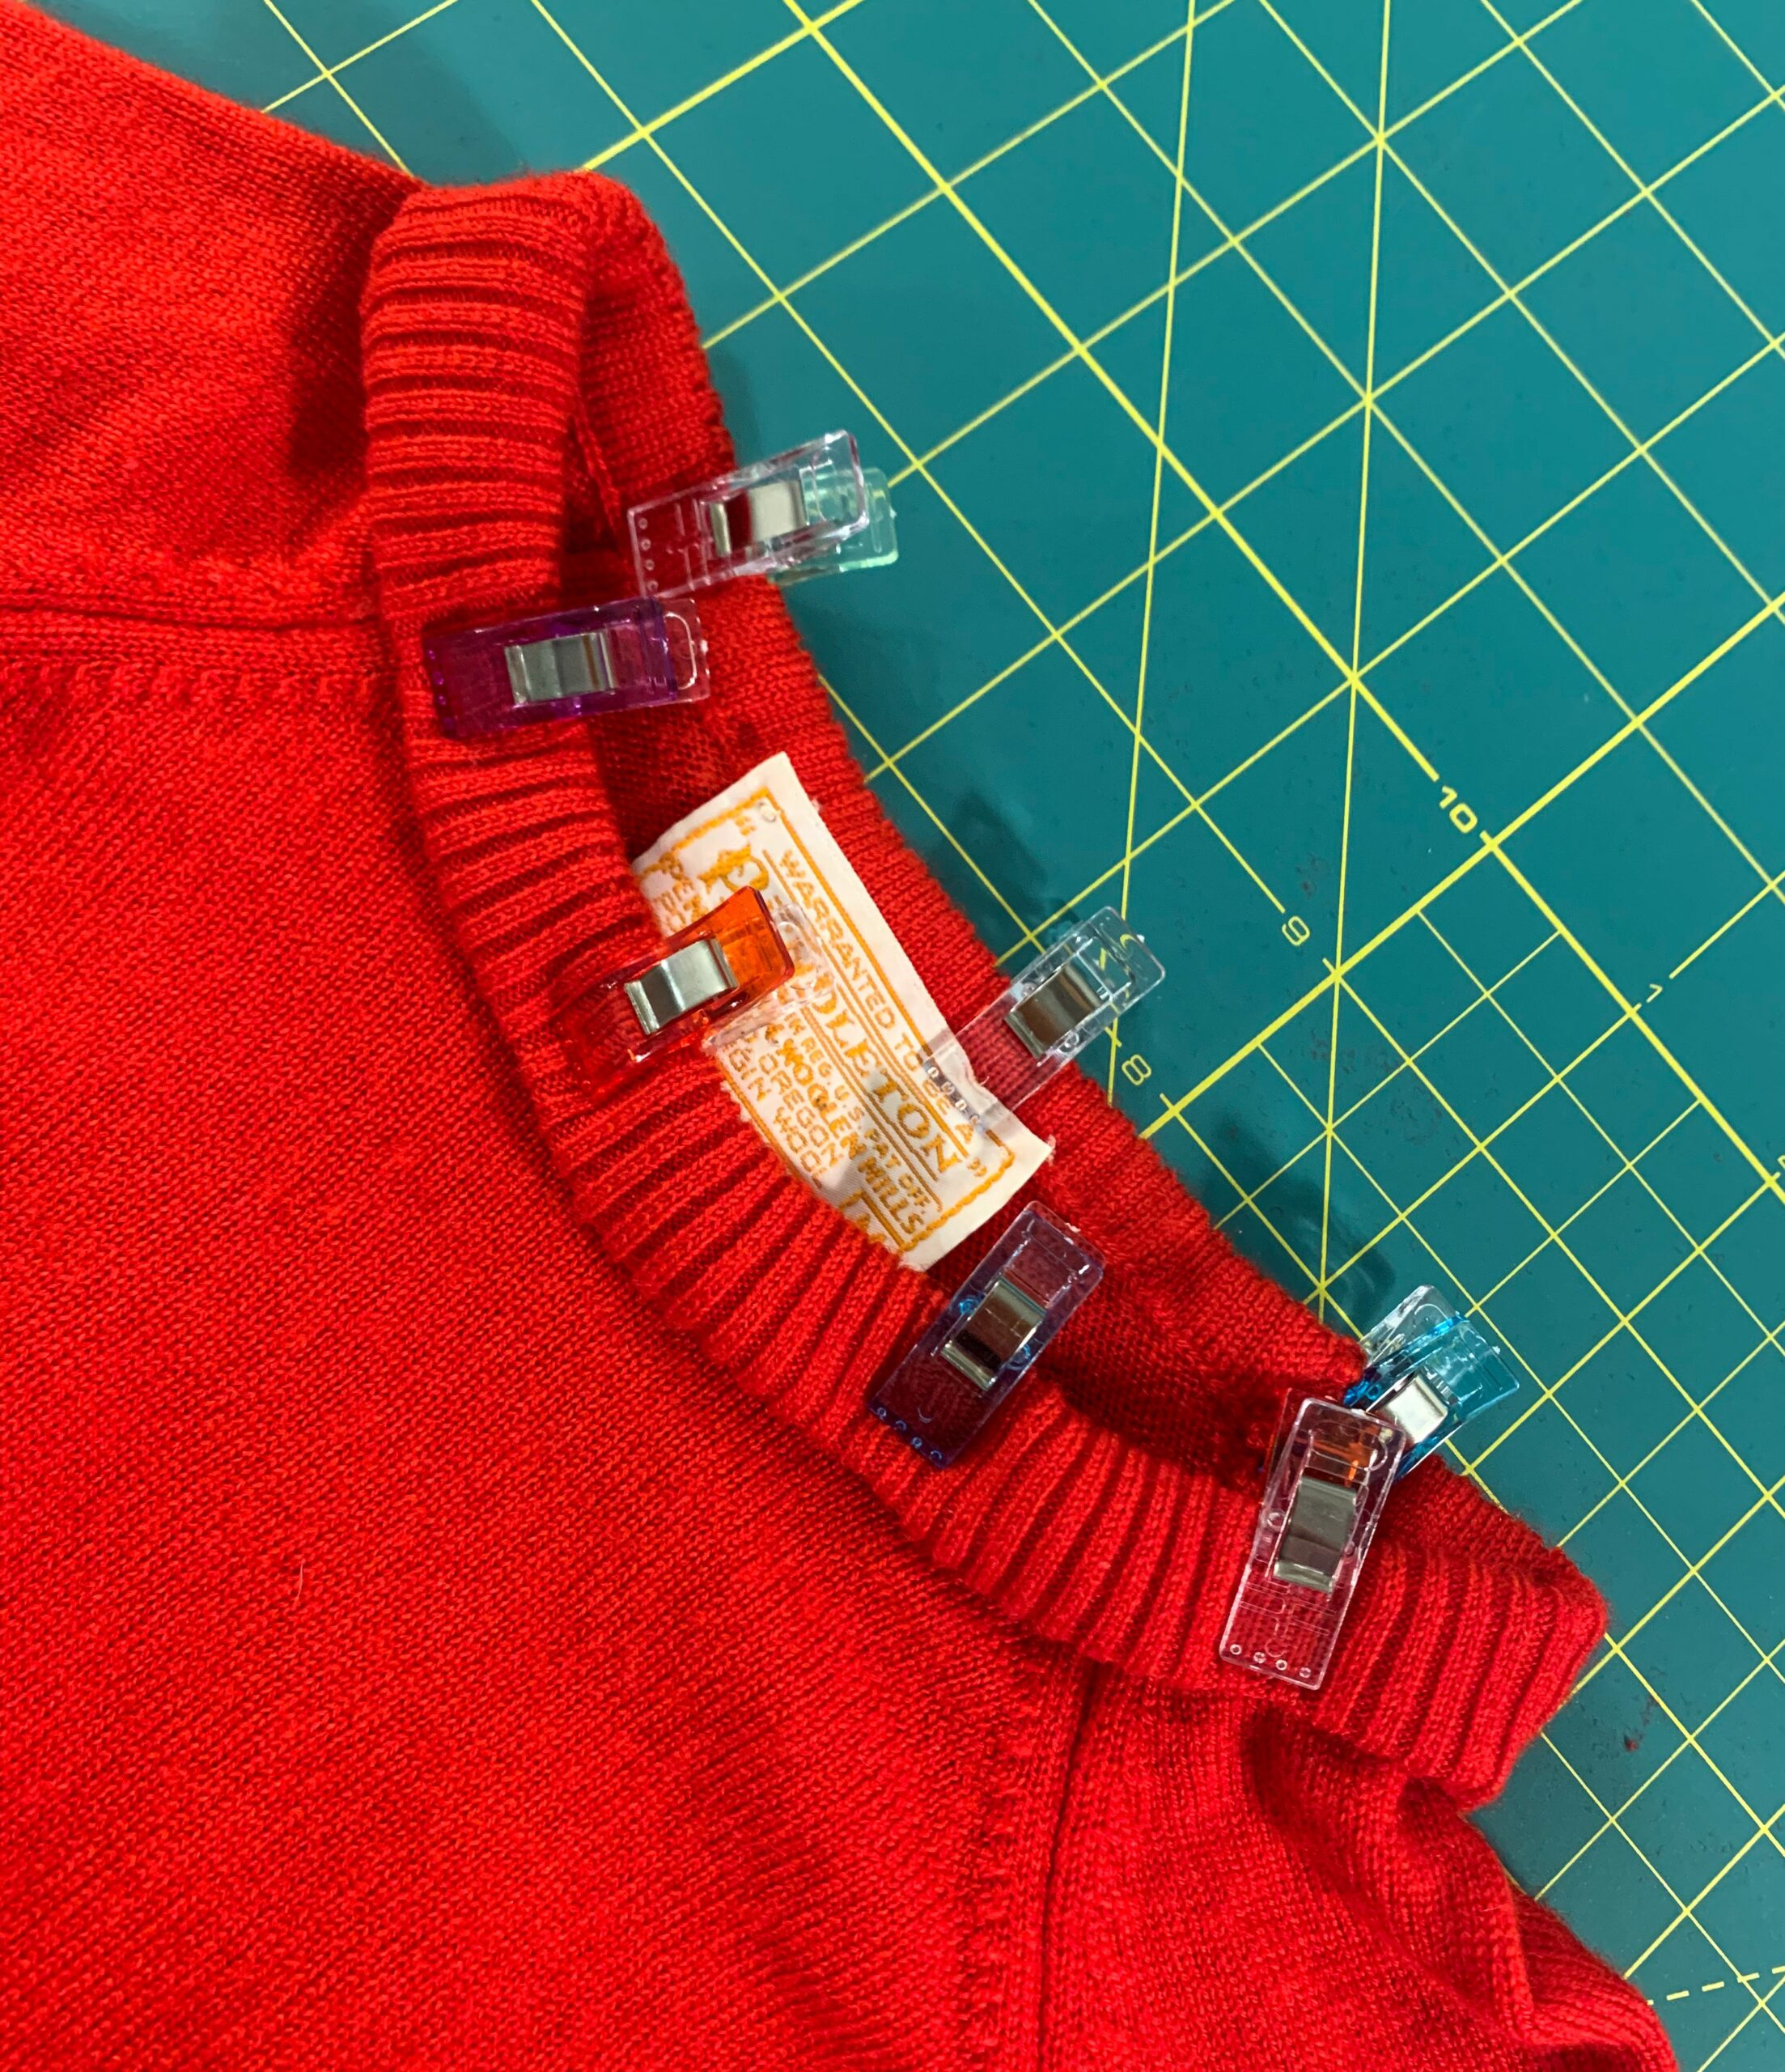 sewing clips holding down new neckline of sweater